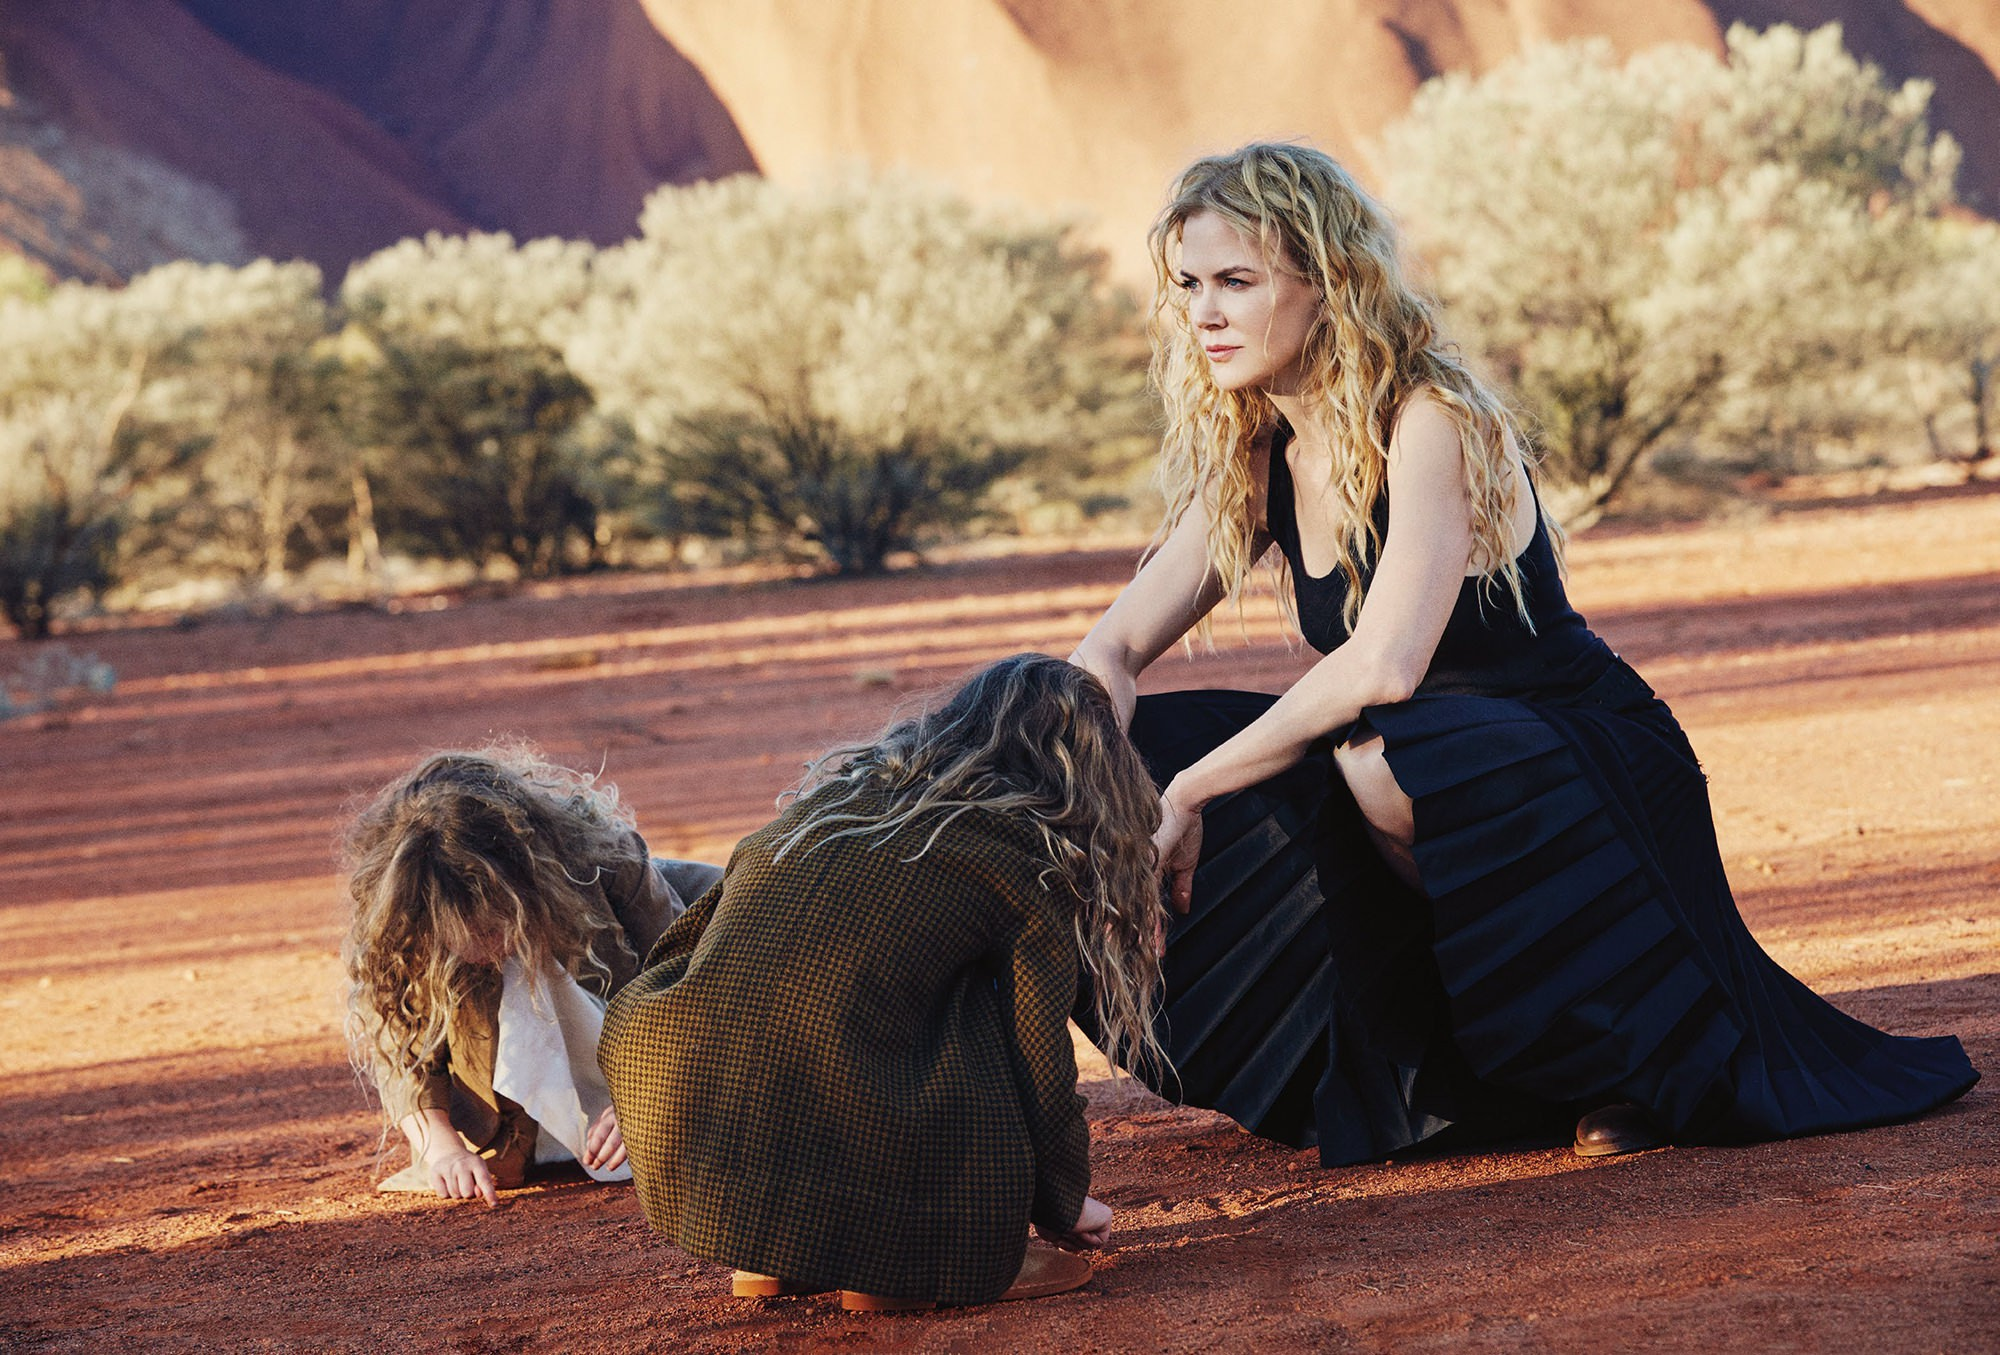 nicole-kidman-by-will-davidson-for-vogue-australia-september-2015-8